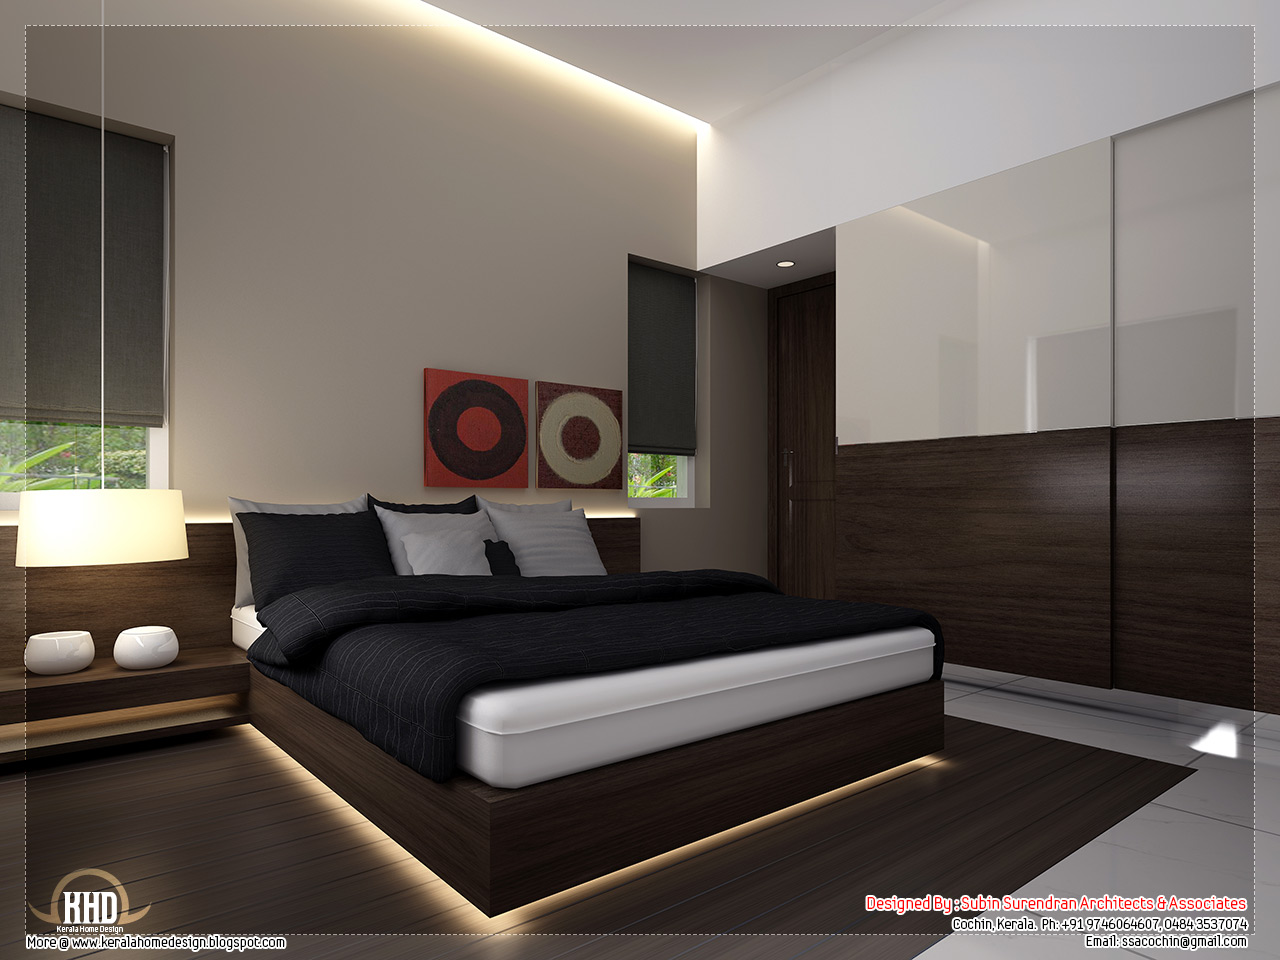 Beautiful home interior designs kerala homes for Bedroom interior design photos